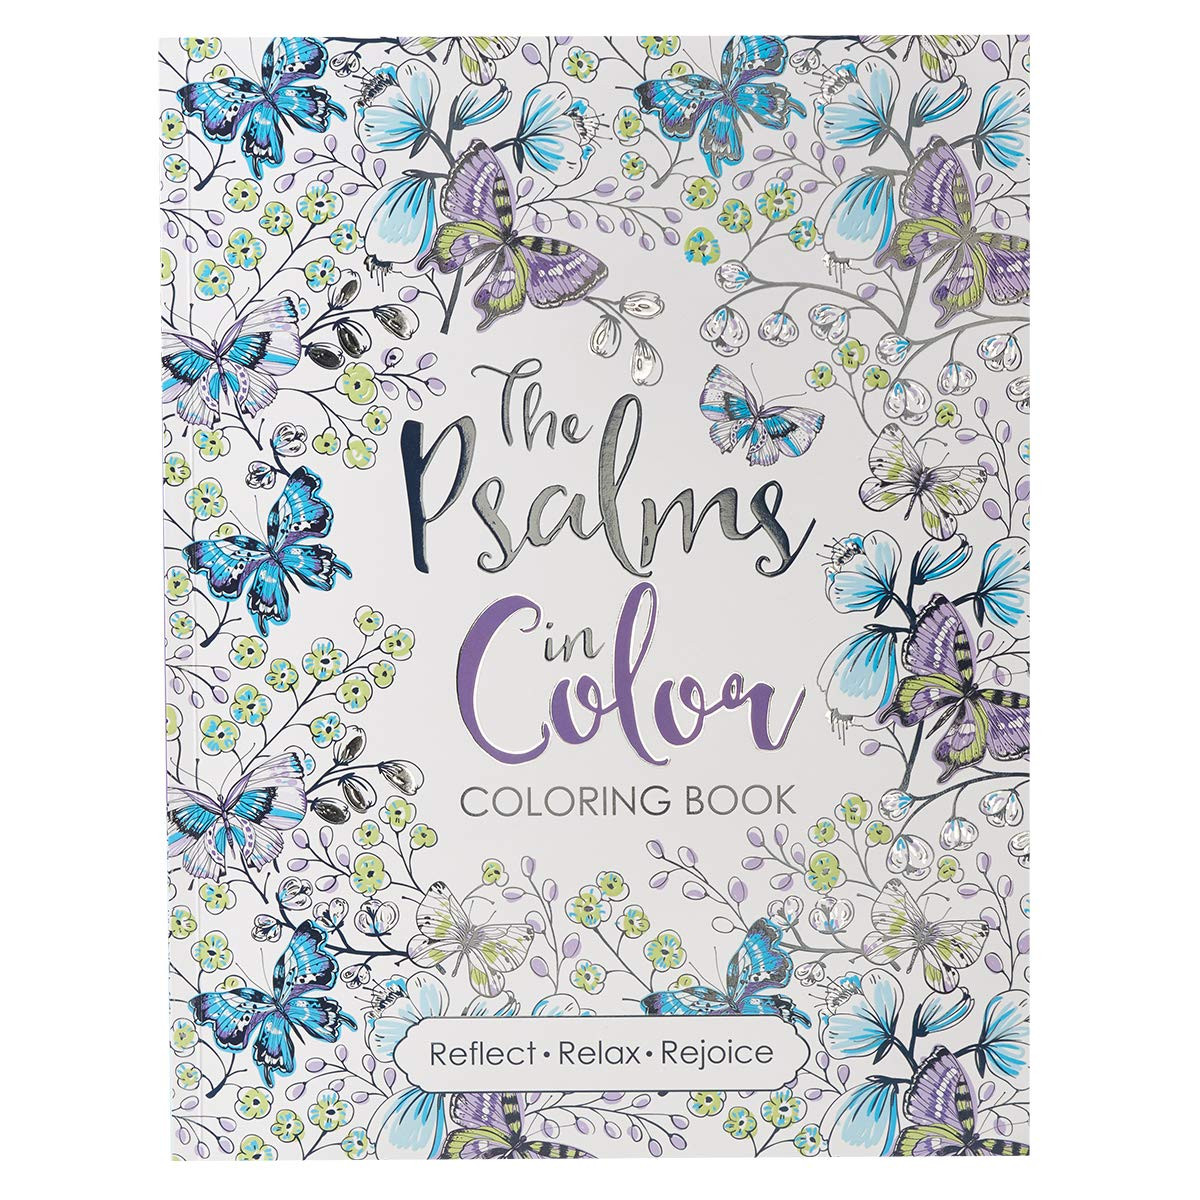 ''The Psalms in Color'' Inspirational Adult Coloring Book